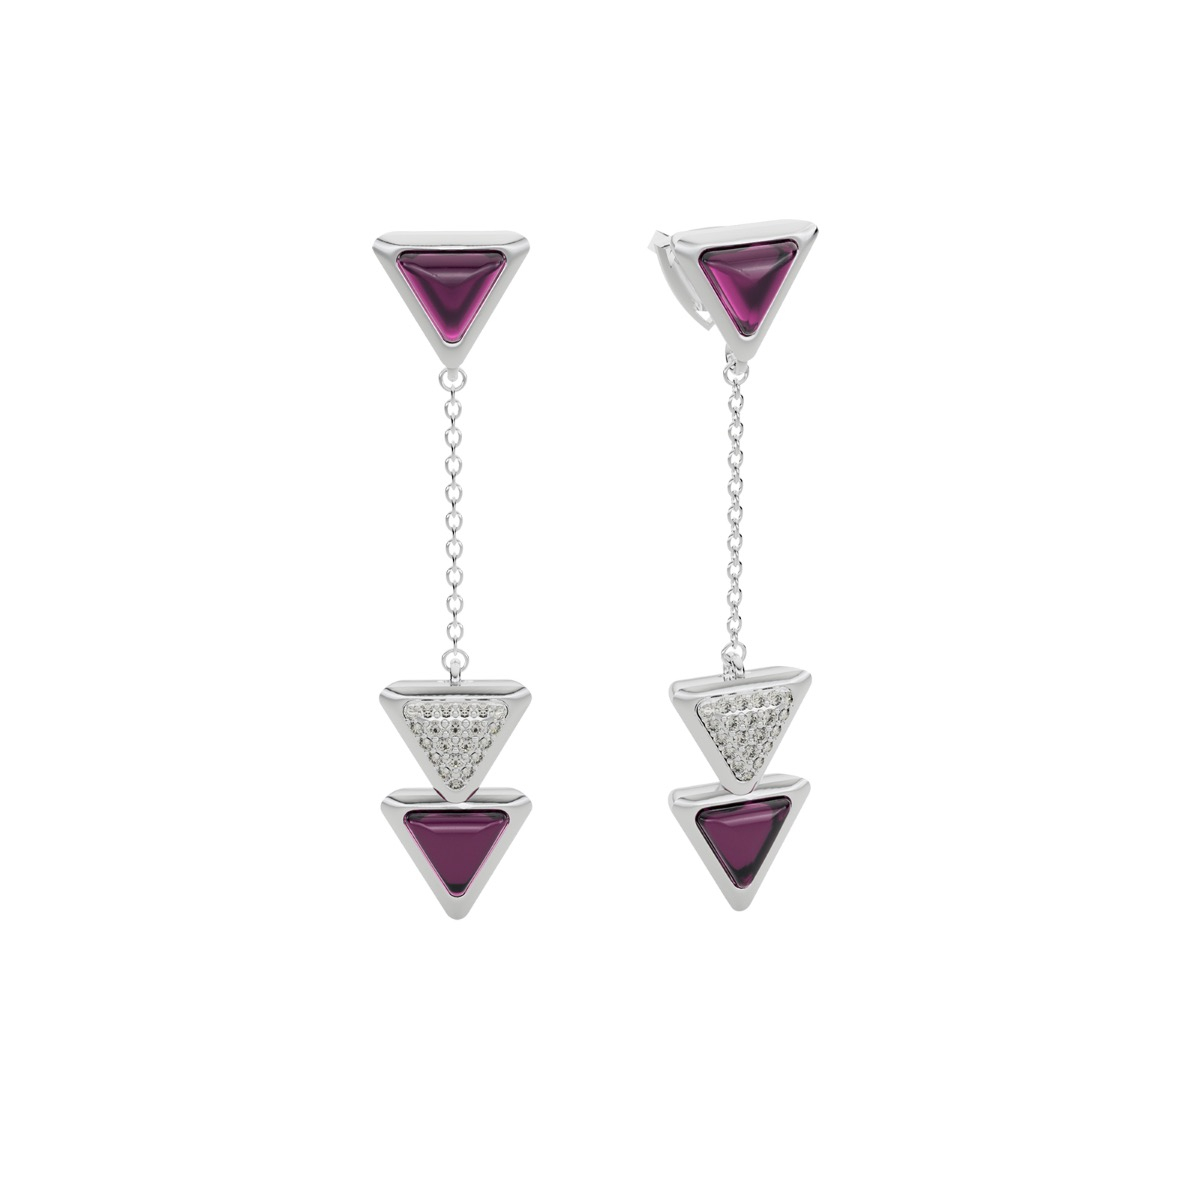 Earrings Dove Vai Forward Exquisite White Gold Pink Garnet and Diamonds